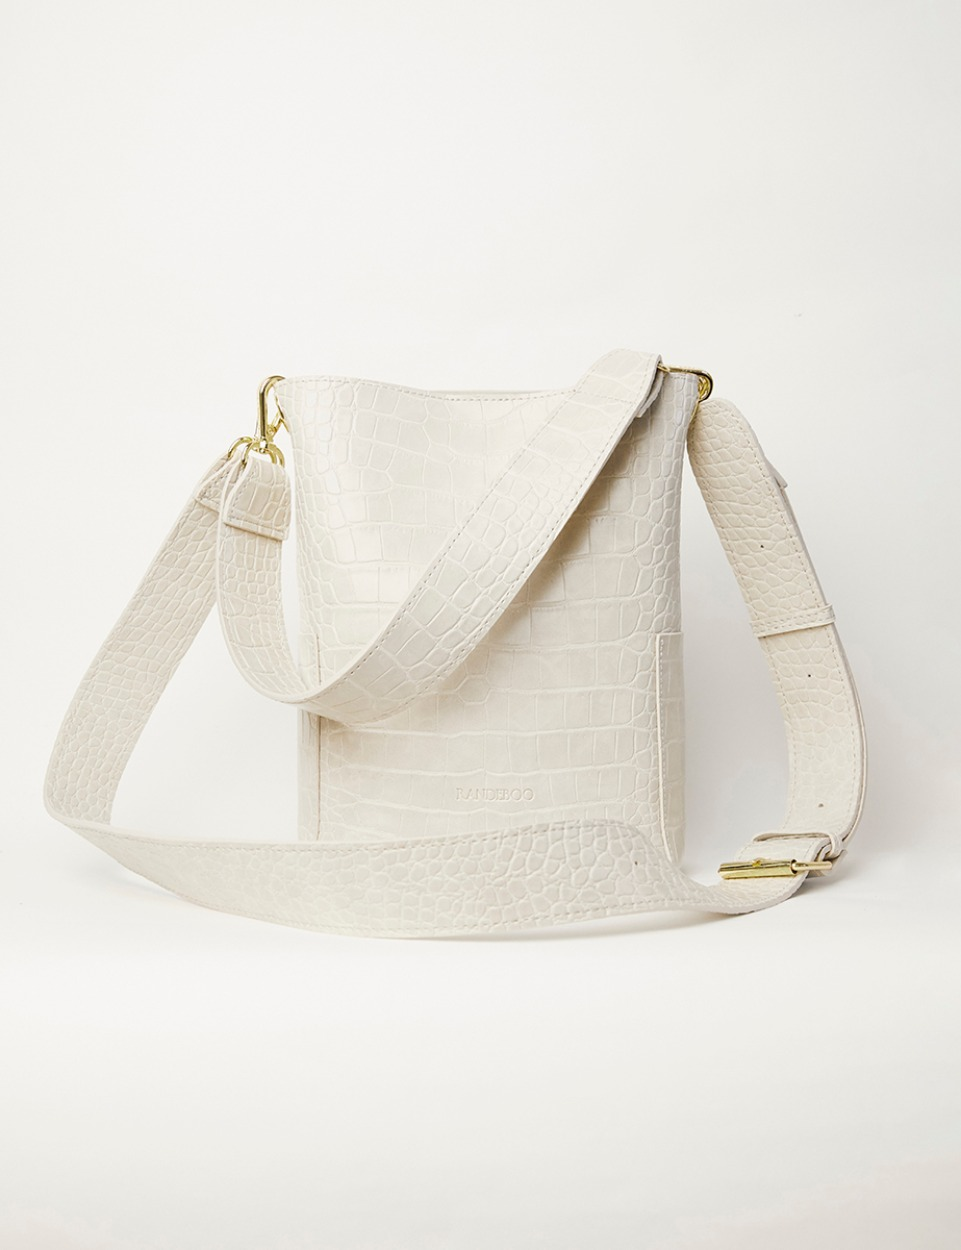 【PRE】RB croco bucket bag (ivory)